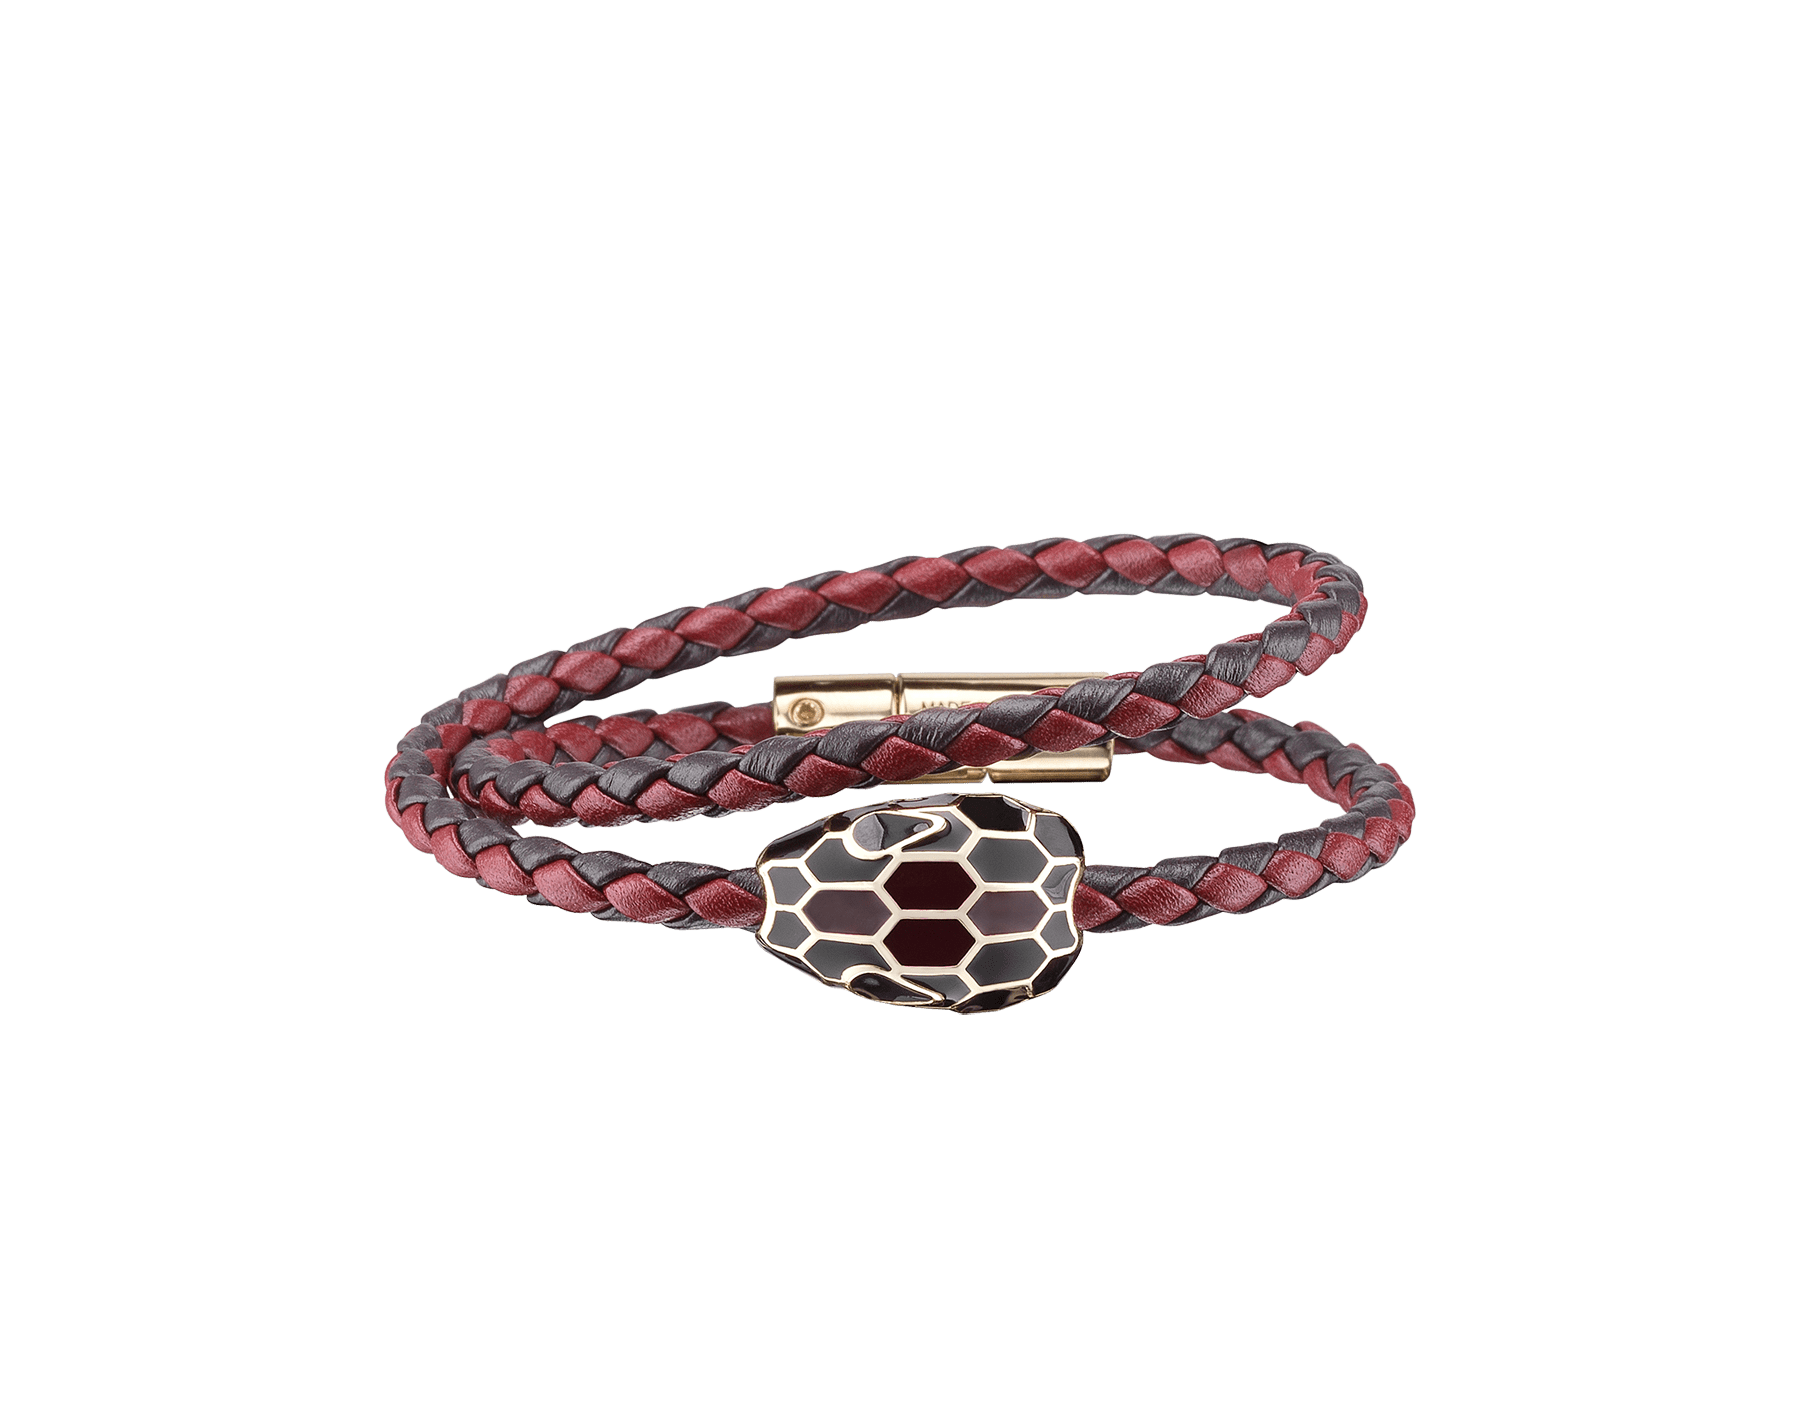 Serpenti Forevermulti-coiled braid bracelet in plum amethyst and roman garnet woven calf leather with an iconic snakehead décor in black and plum amethyst enamel. 288352 image 1